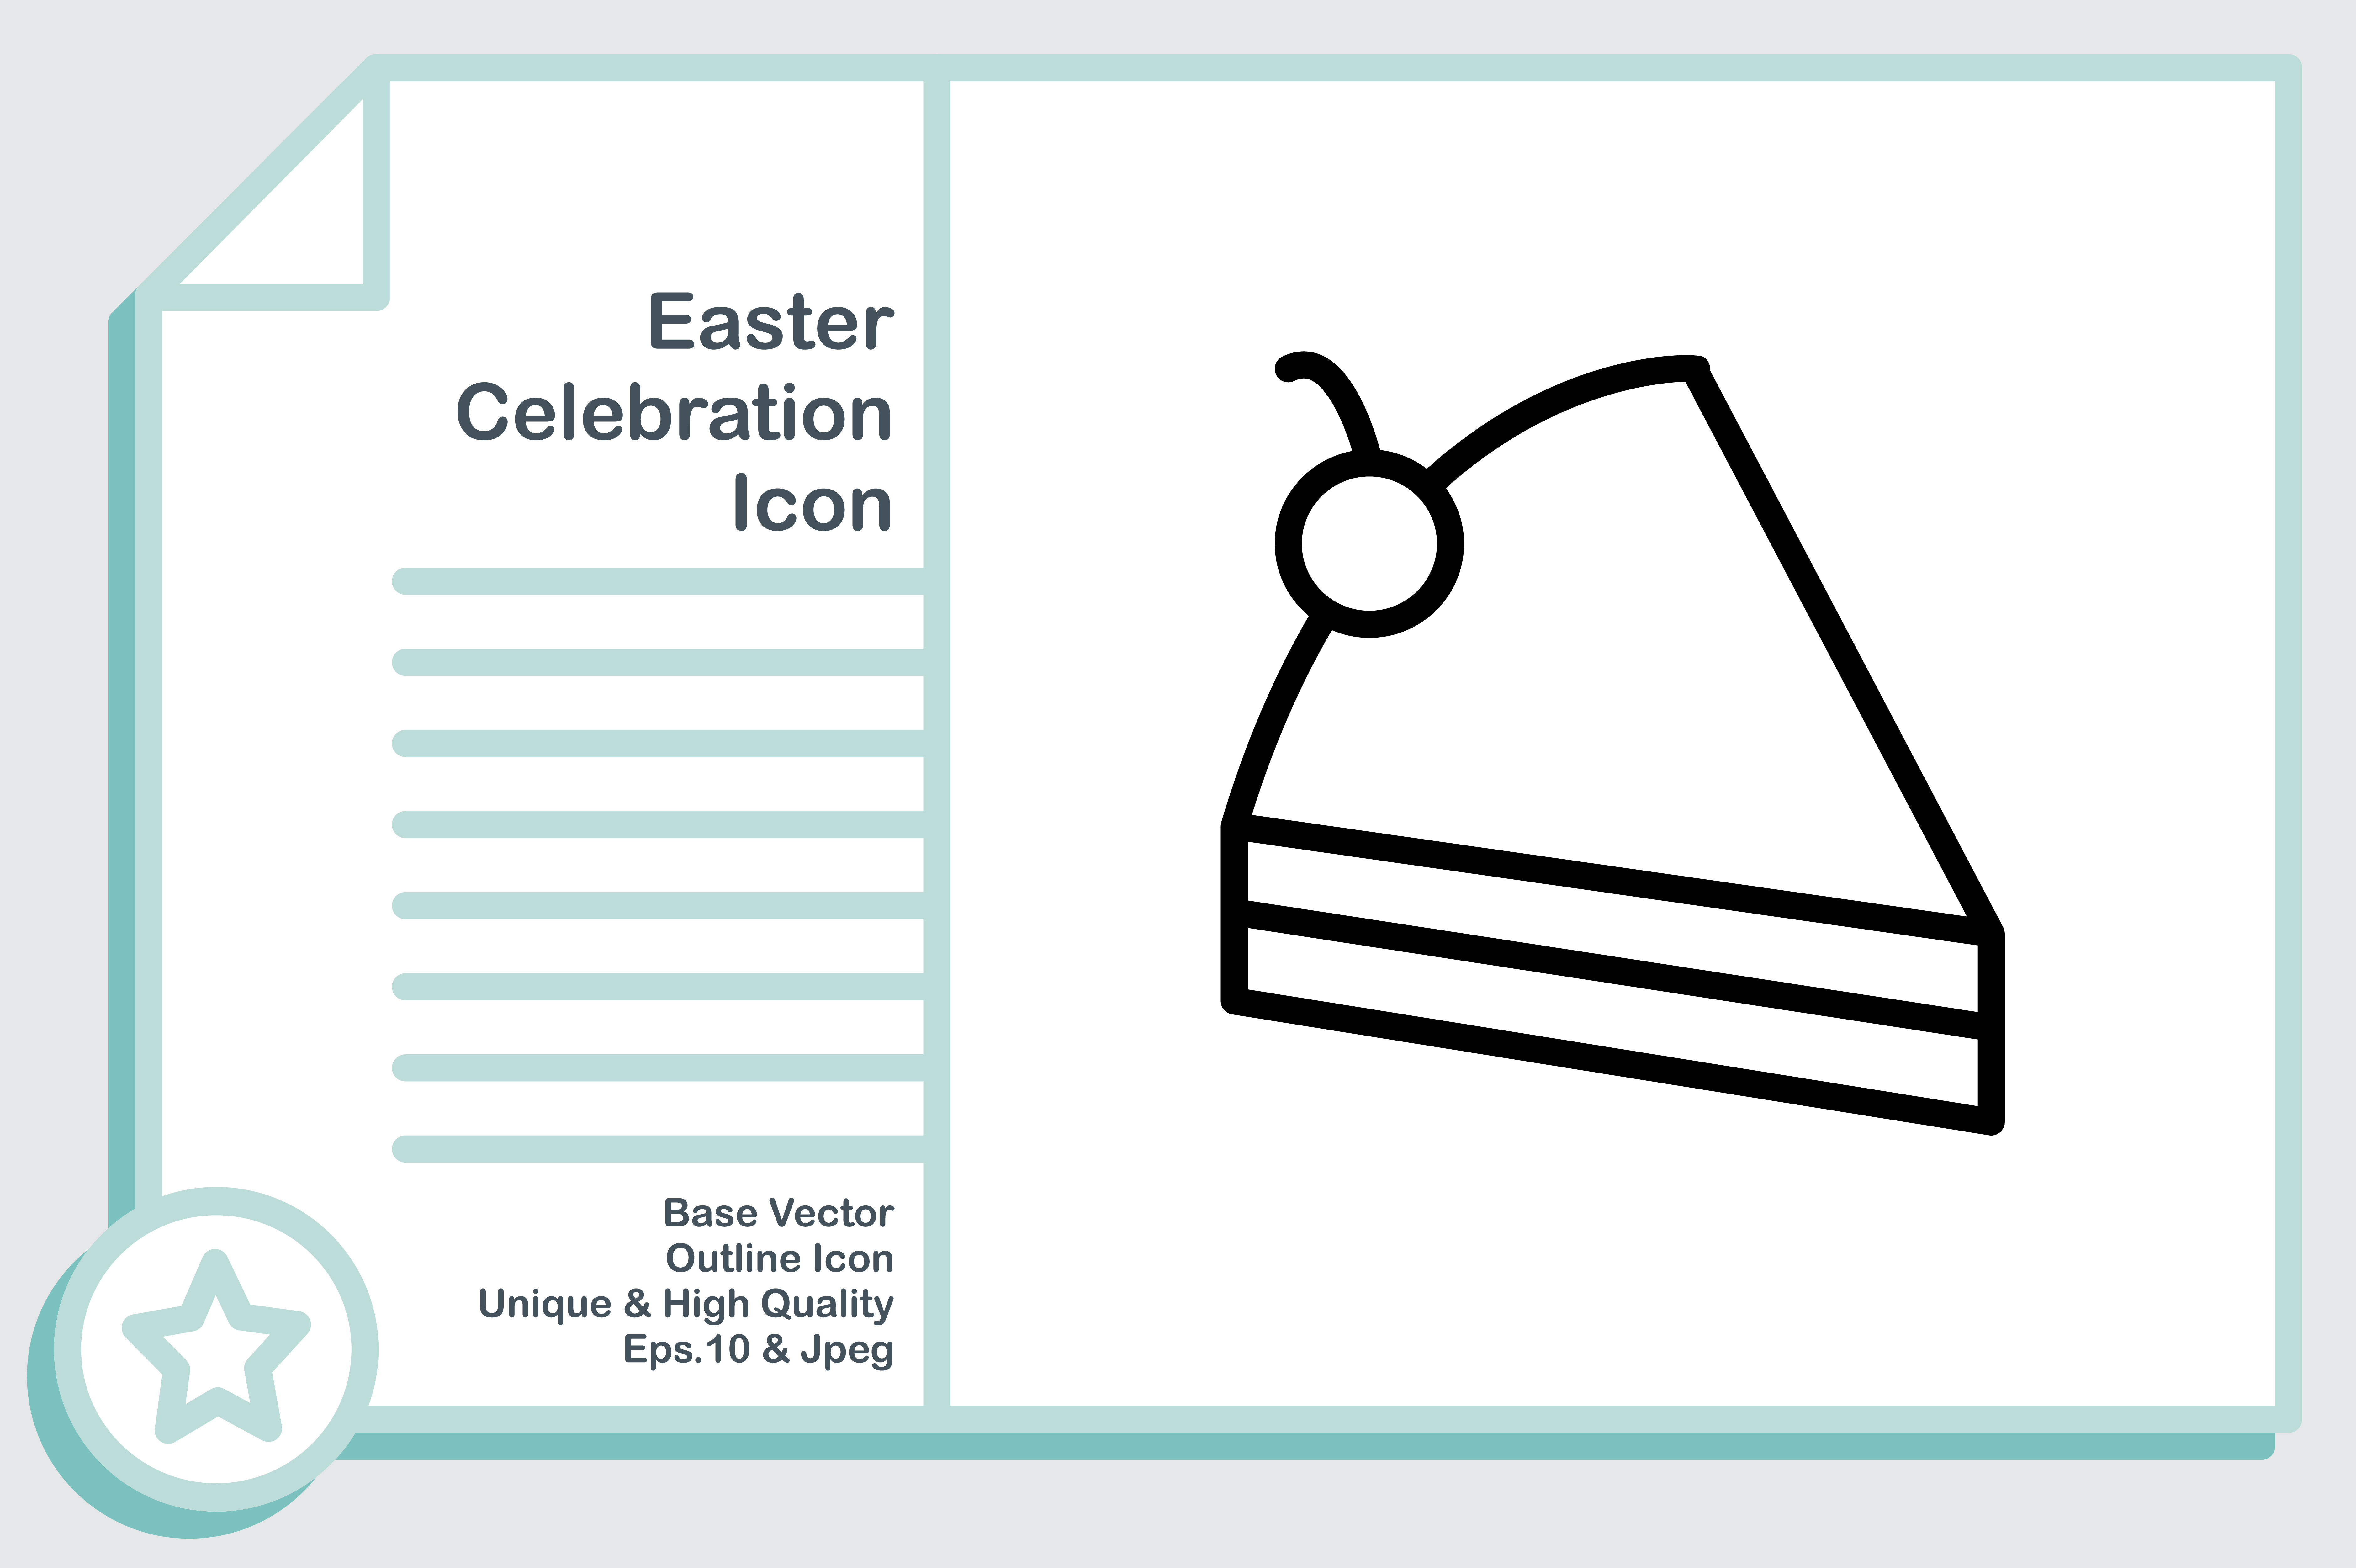 Download Free Easter Celebration Cake Graphic By Noumineomi Creative Fabrica for Cricut Explore, Silhouette and other cutting machines.